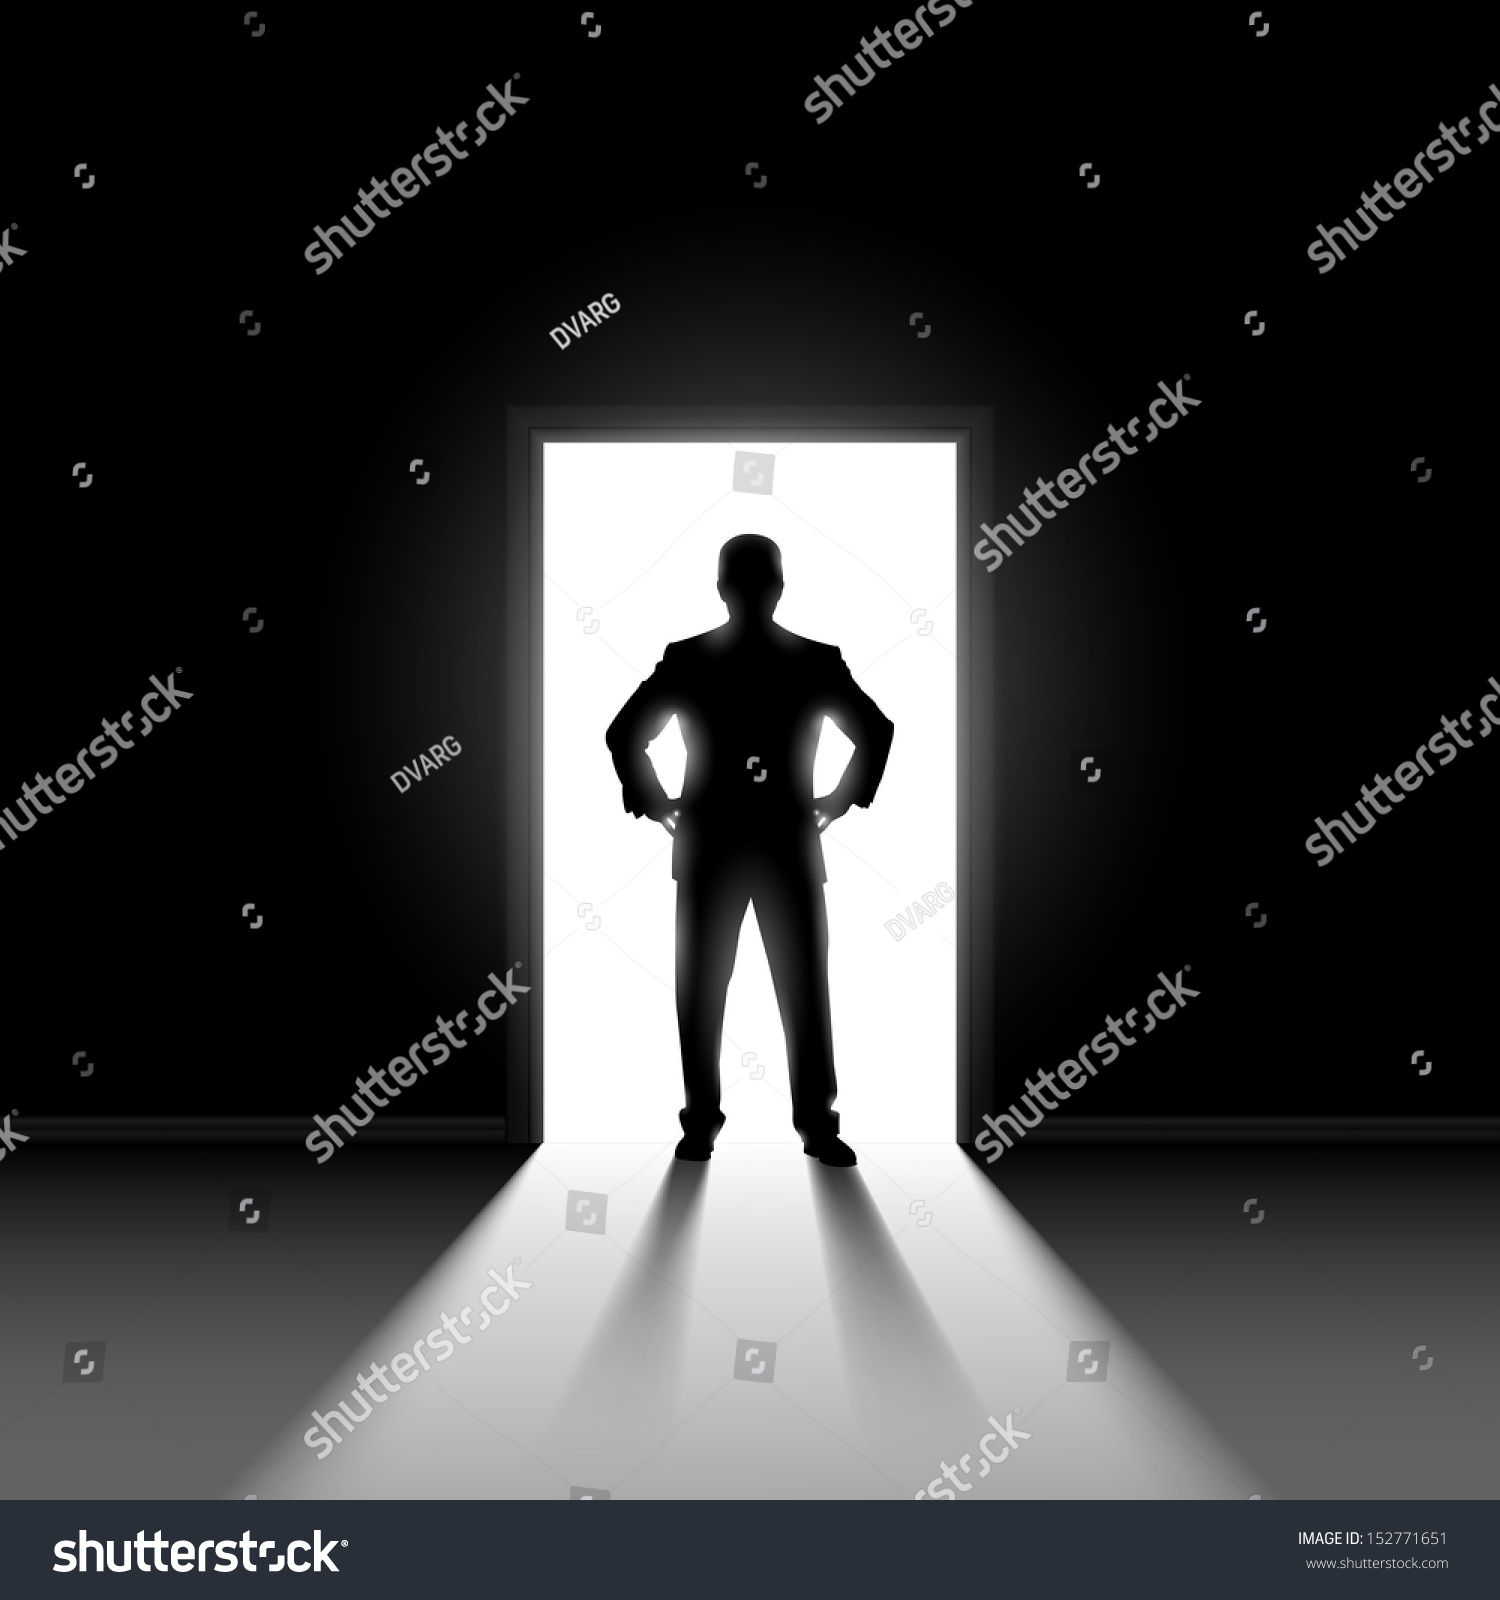 Silhouette Of Man Entering Dark Room With Bright Light In